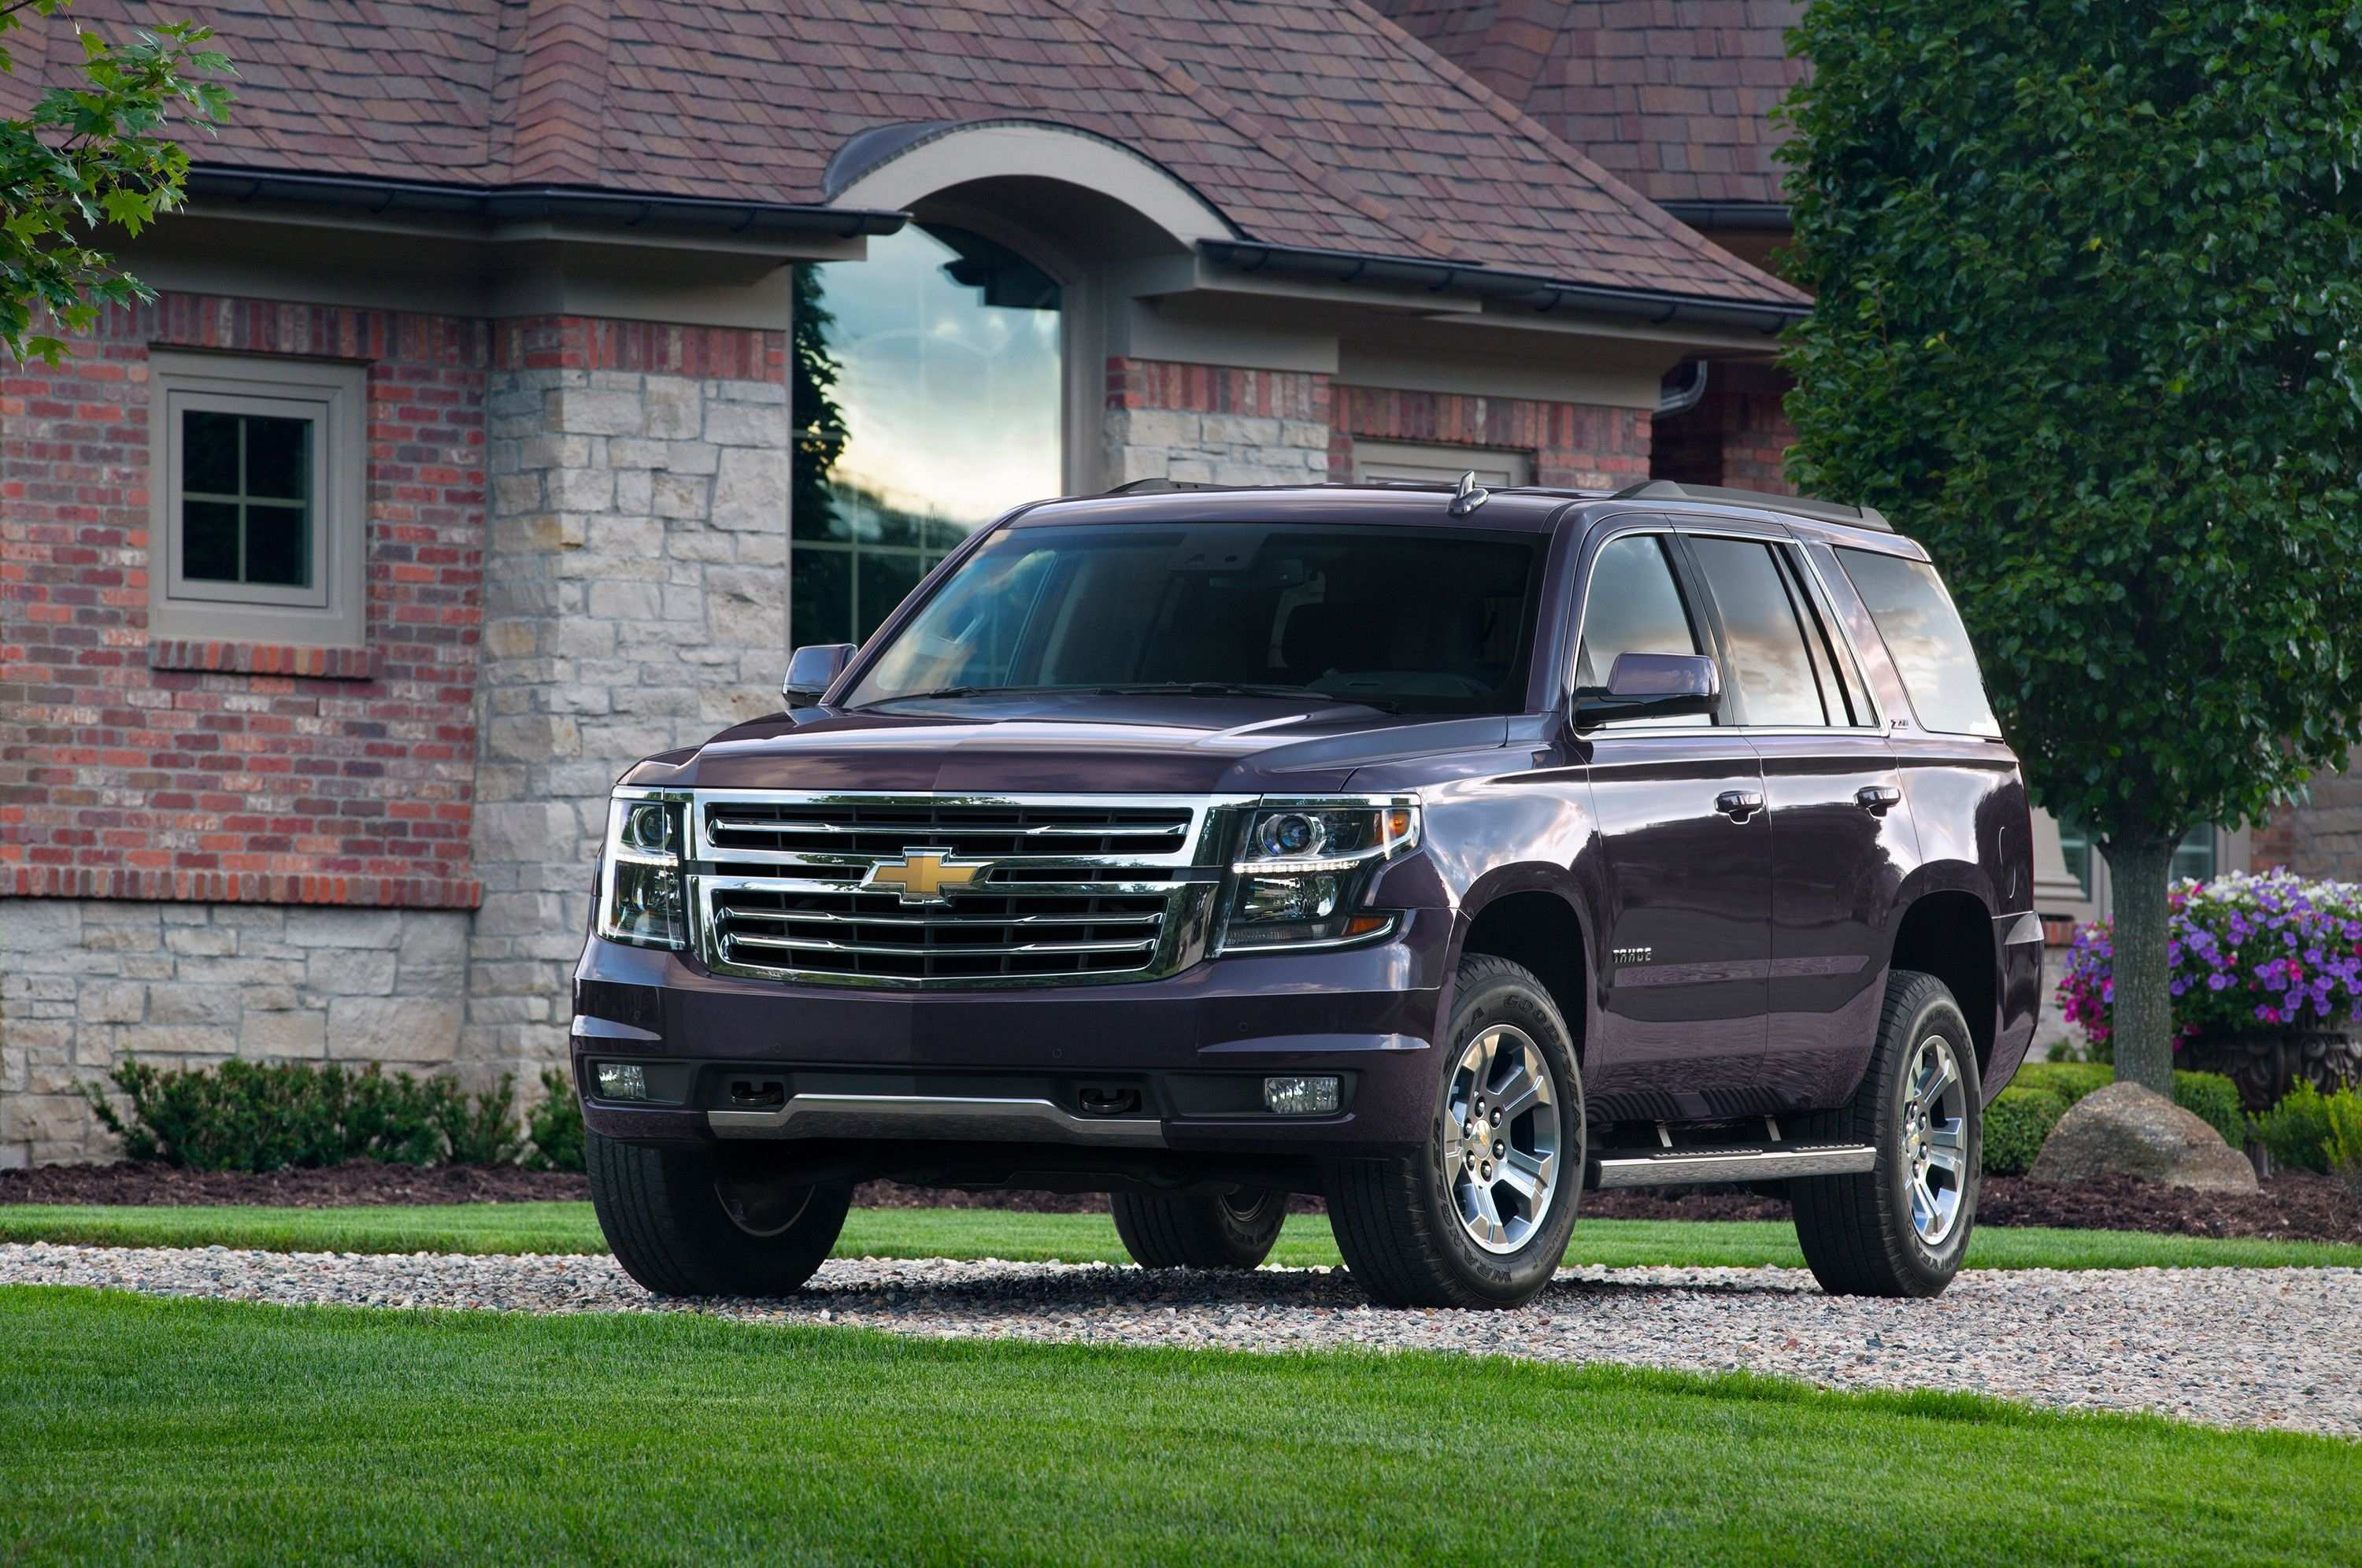 46 All New 2020 Chevy Suburban 2500 Z71 Release with 2020 Chevy Suburban 2500 Z71